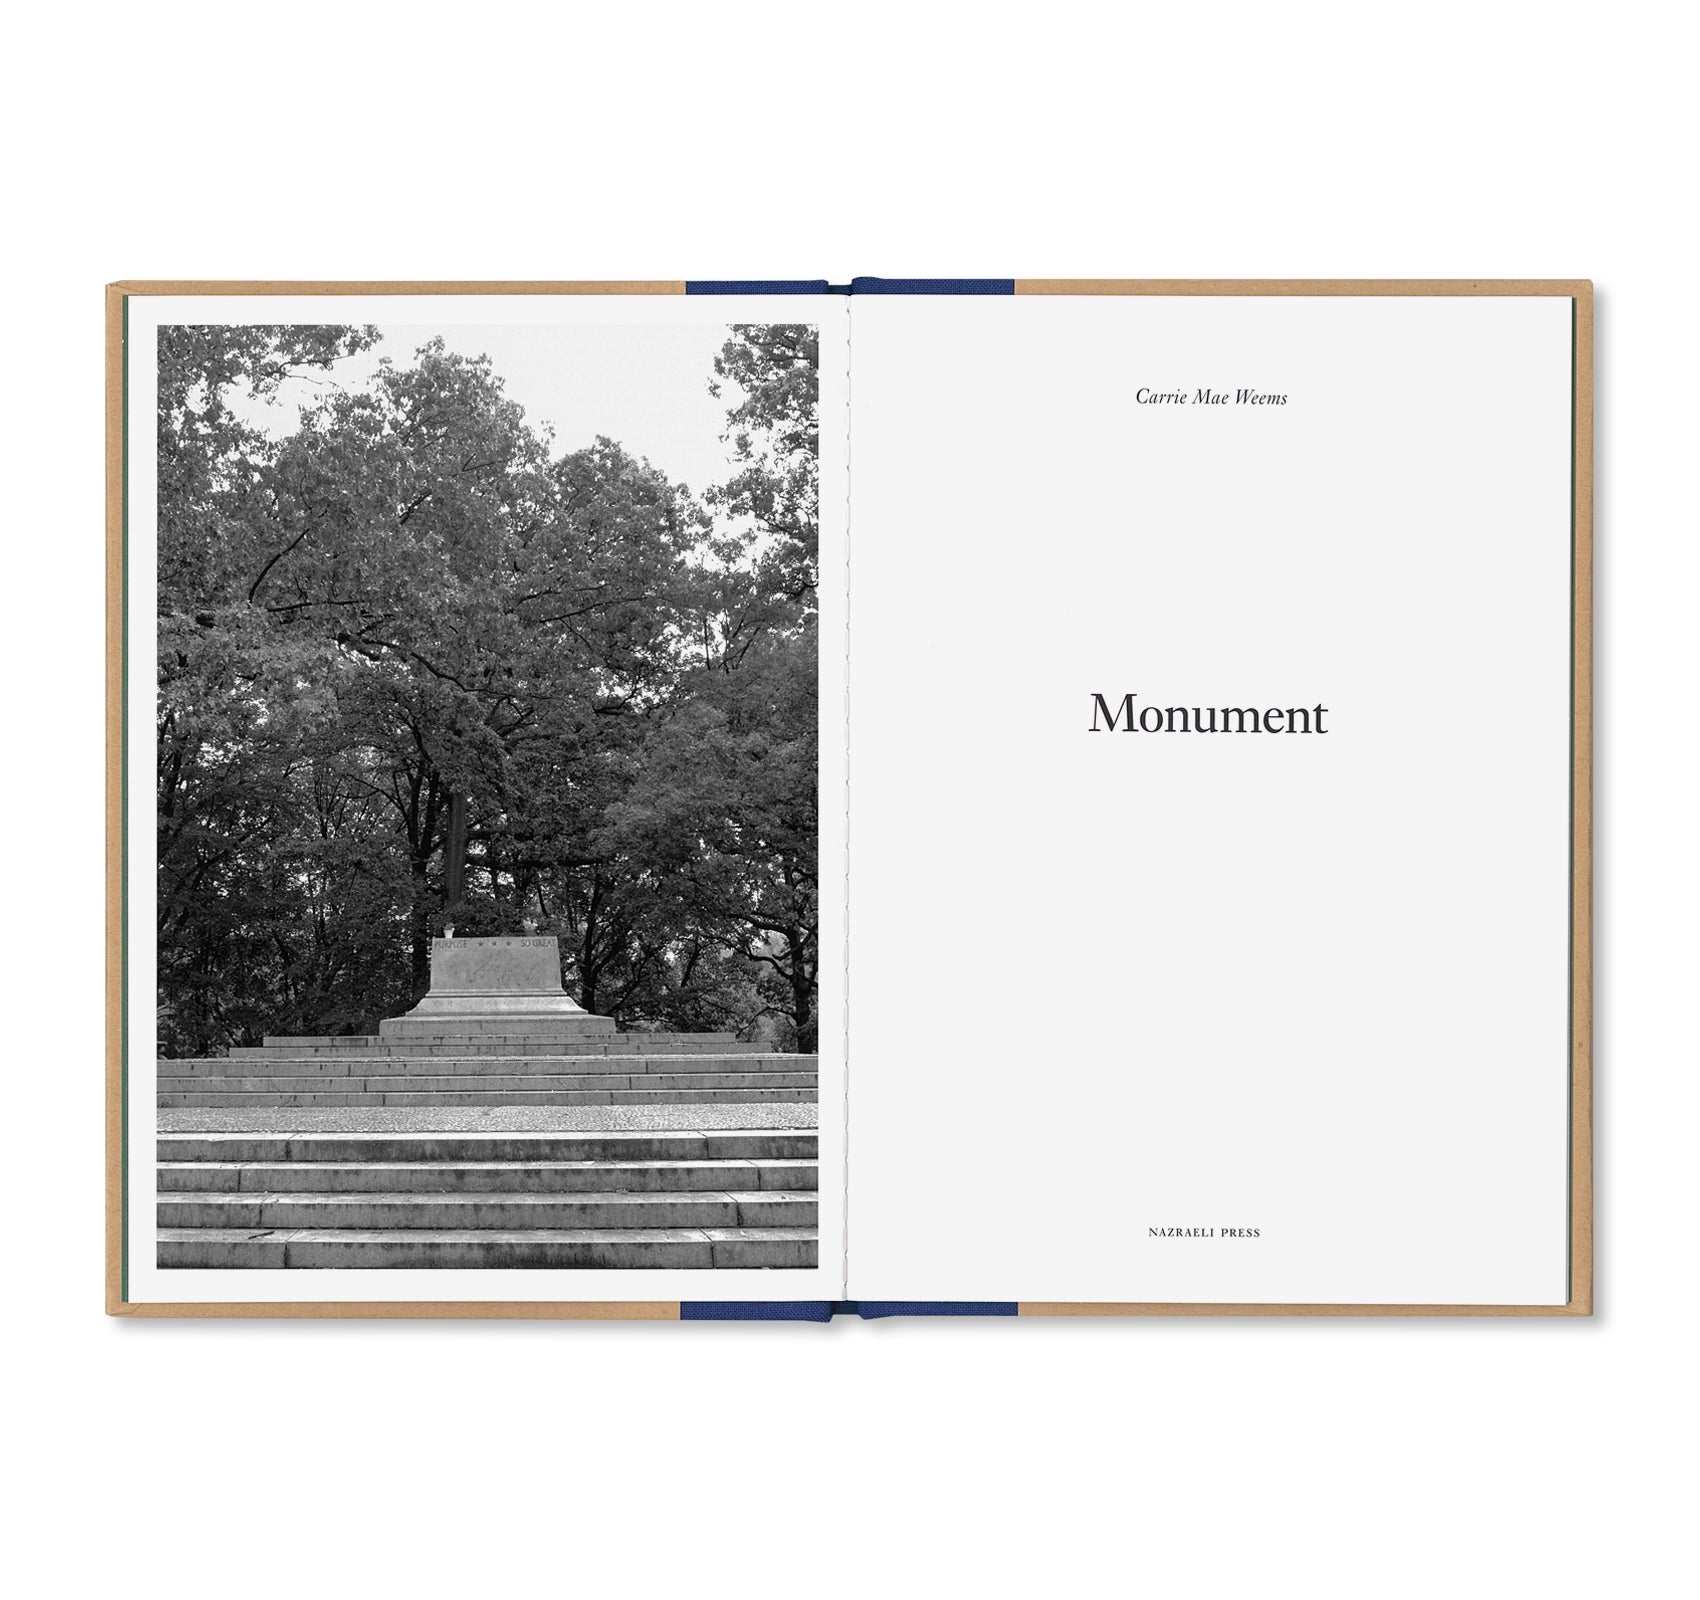 ONE PICTURE BOOK TWO #3: MONUMENT by Carrie Mae Weems